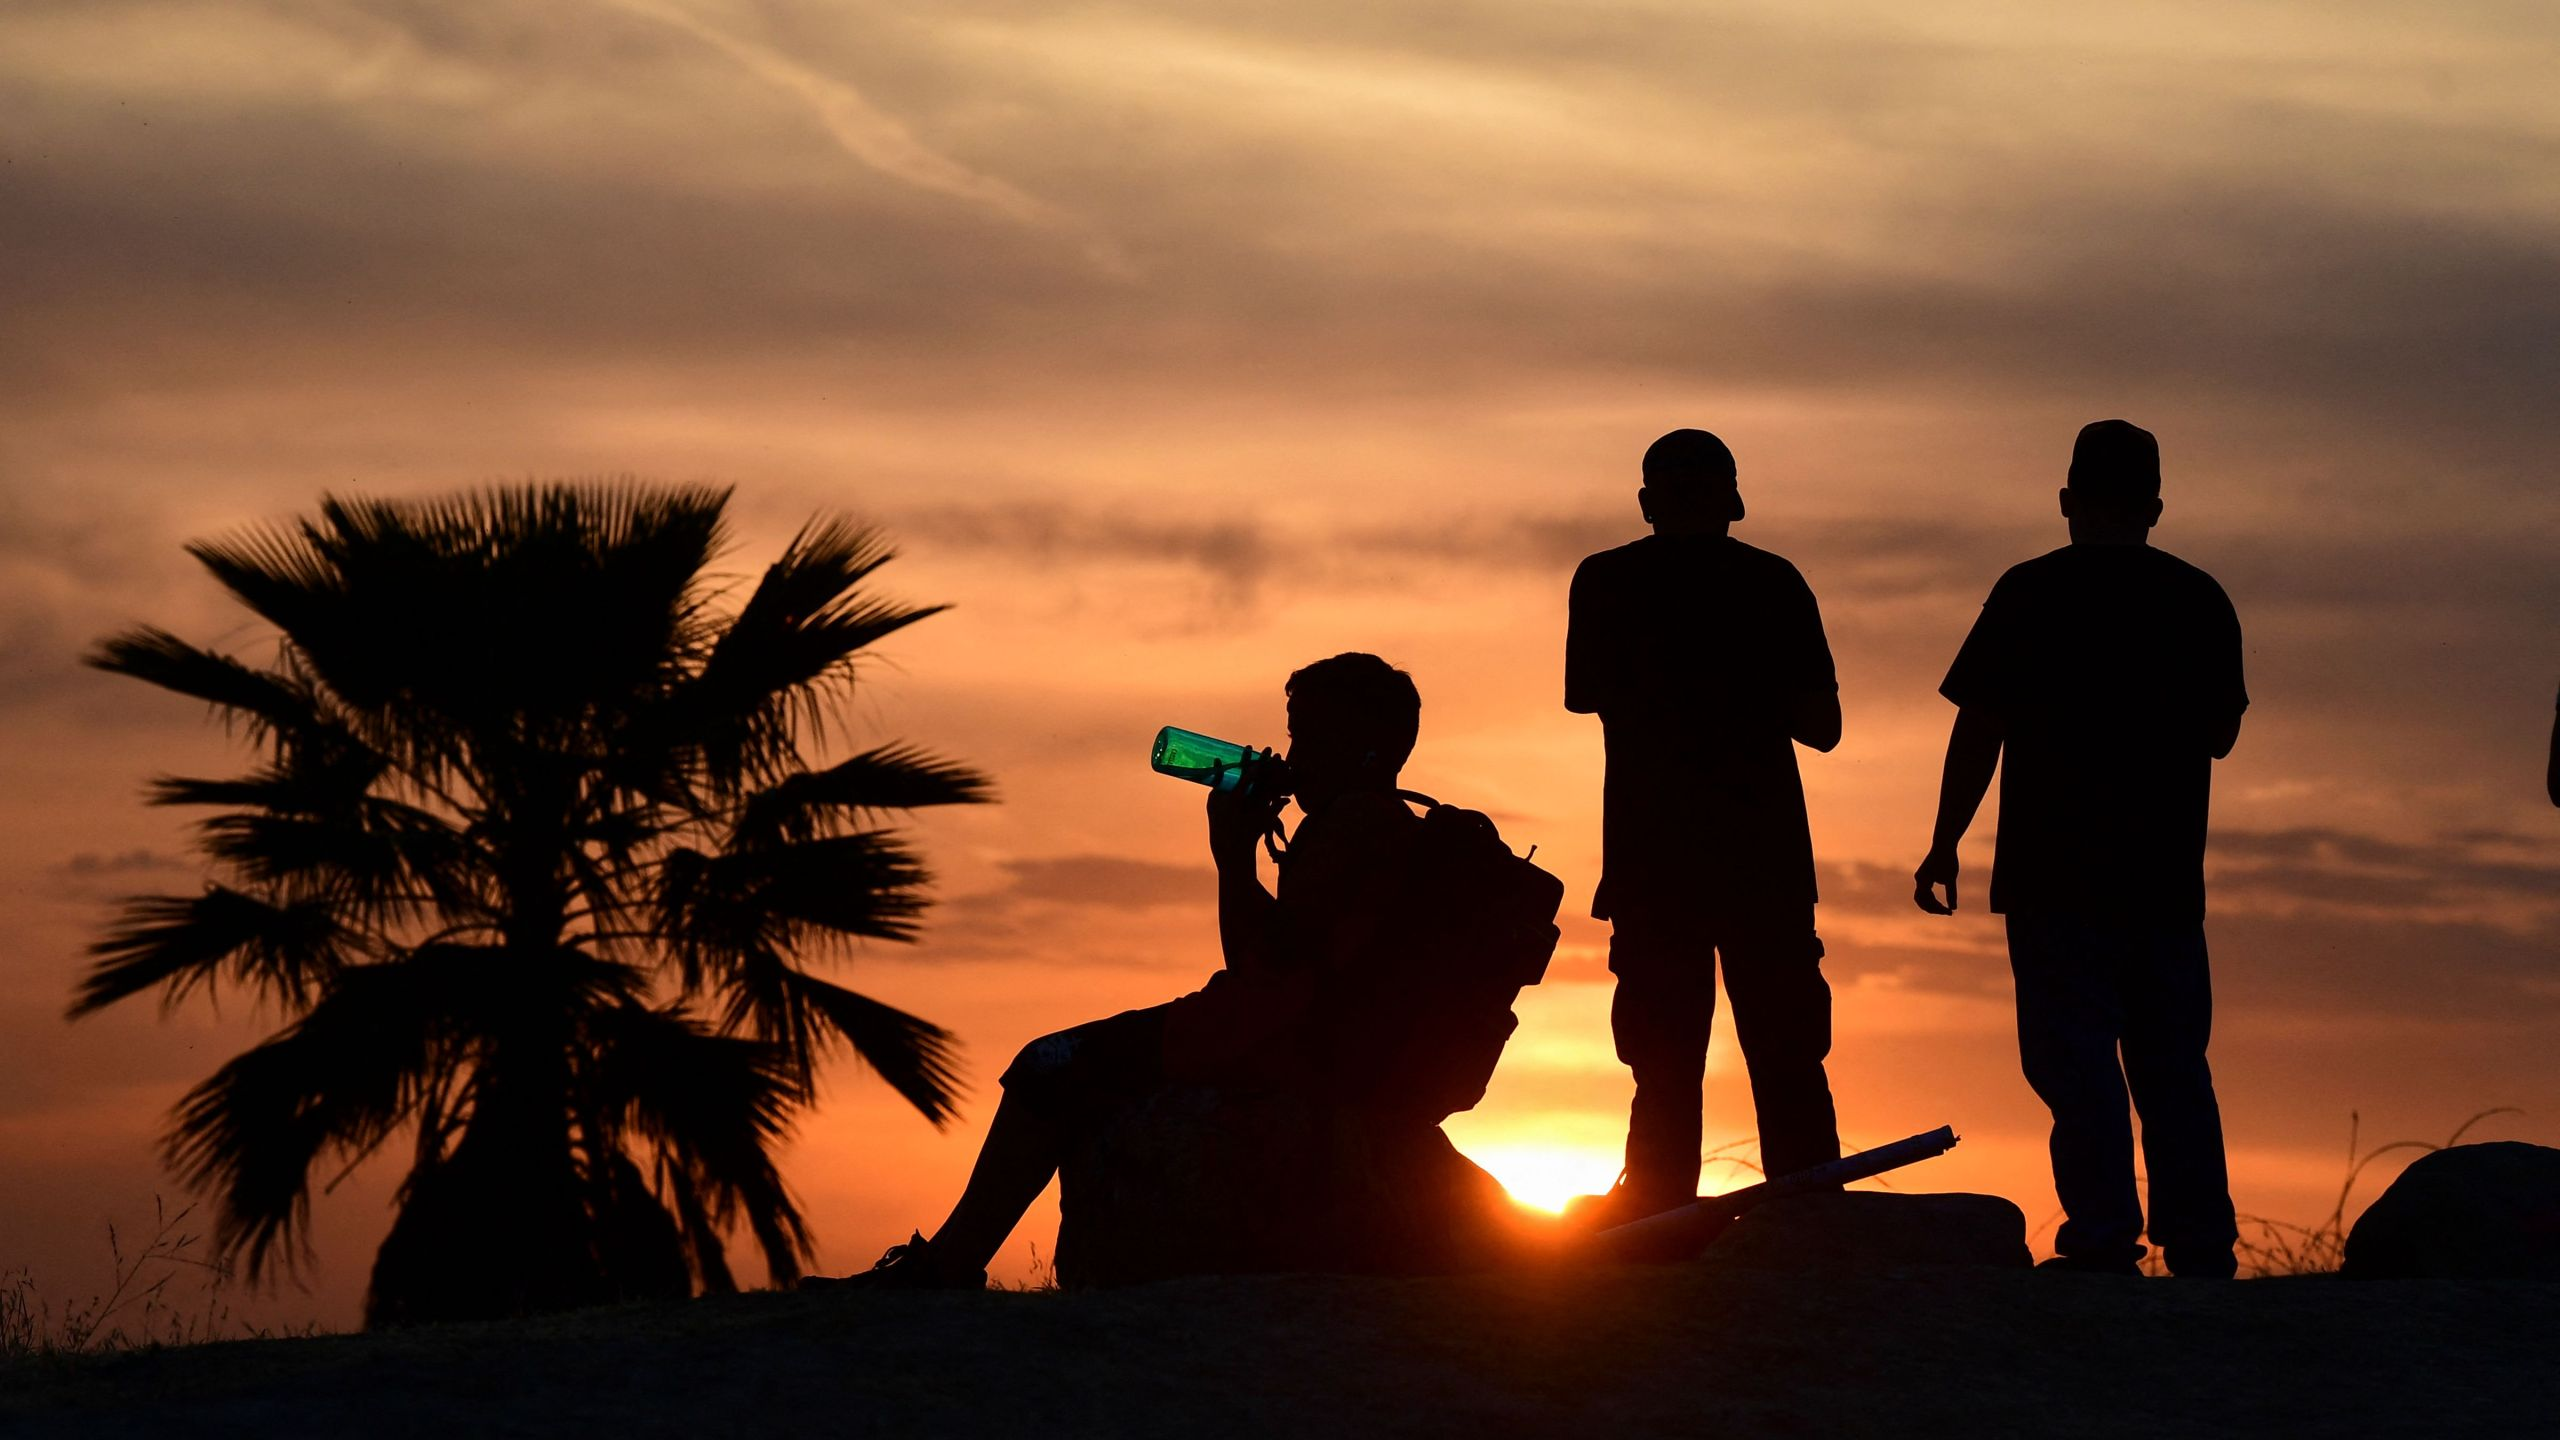 People view the sun set as a child drinks from a water bottle on June 15, 2021 in Los Angeles, as temperatures soar in an early-season heatwave. (Frederic J. BROWN/AFP via Getty Images)